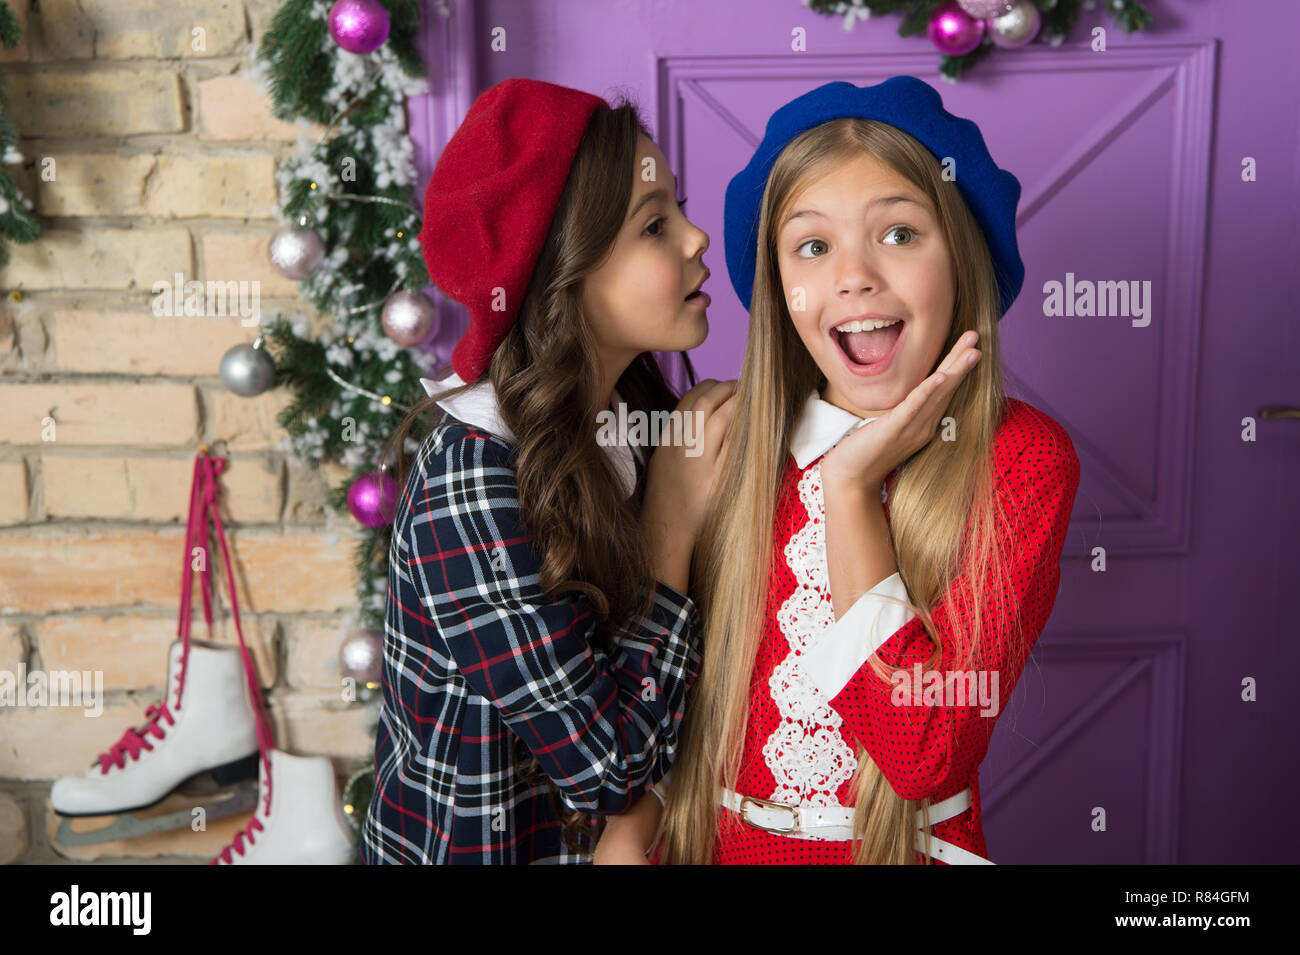 Winter gossips concept. Girls small kids front festive christmas decorations. Lets have fun and celebrate christmas. Christmas tips for kids. Children cute girls ready meet christmas and new year. - Stock Image